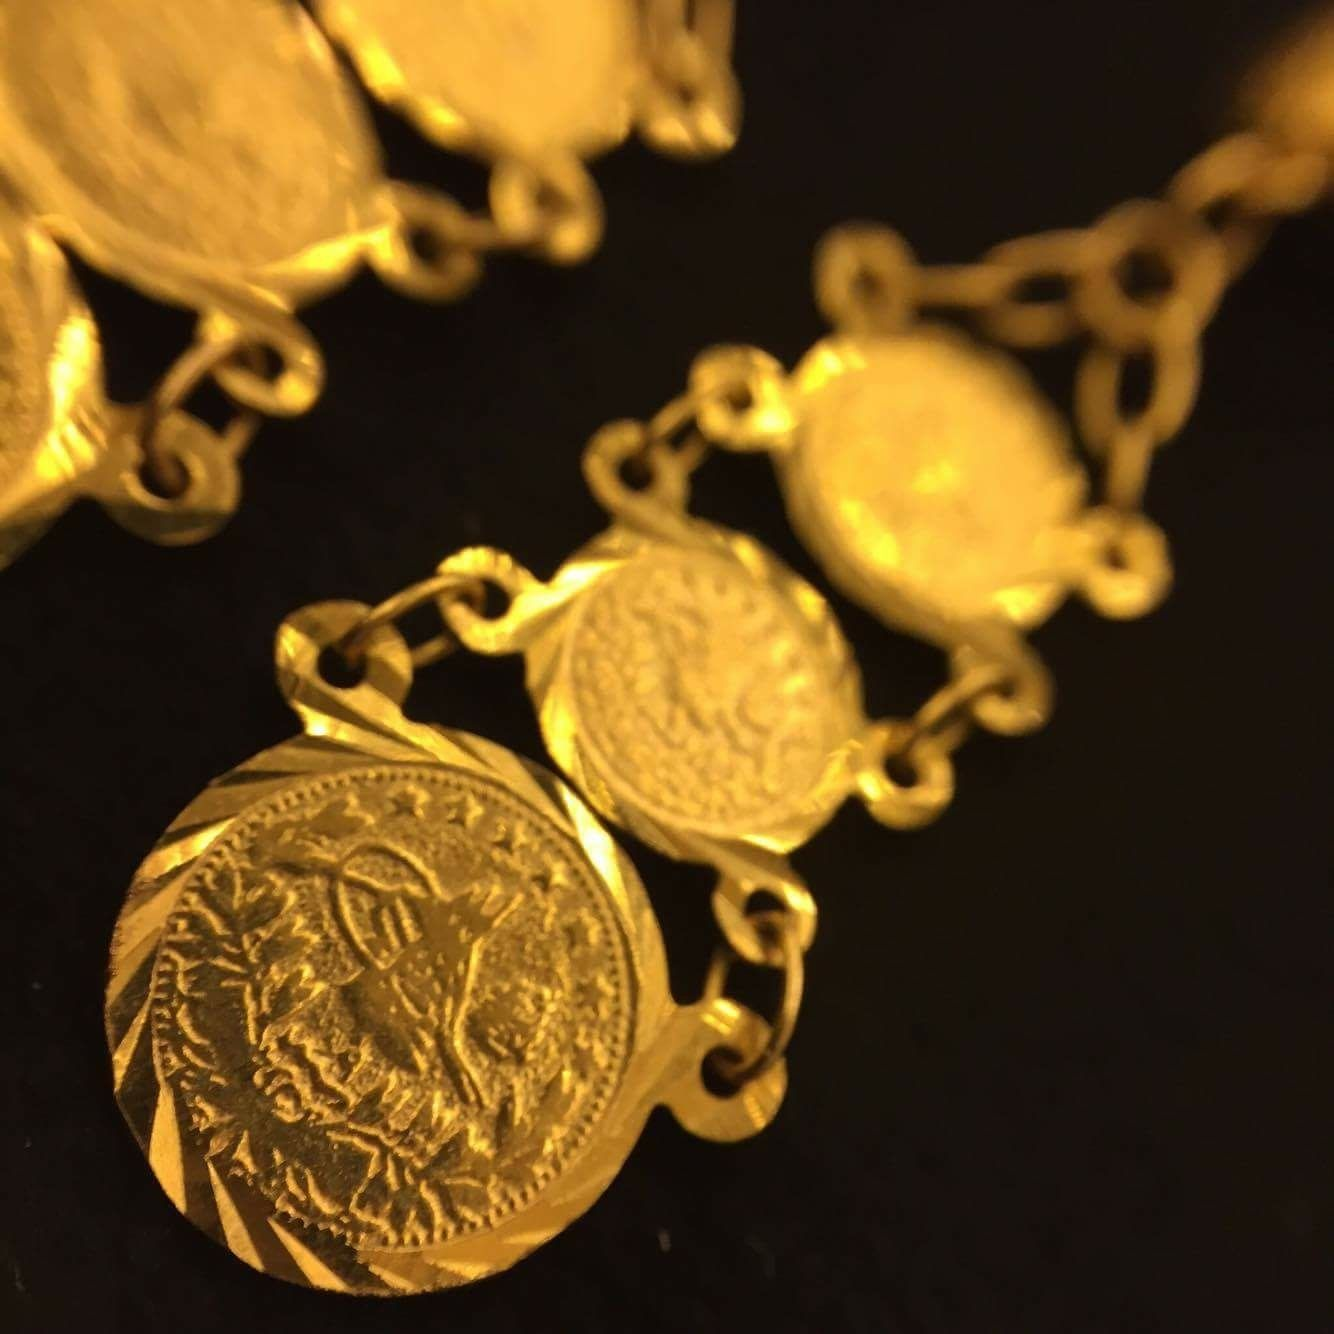 Do you love wearing beautiful earrings??  Often changes your whole look...  This pair are like small beautiful thin gold coins, 21ct gold  Price 380 € www.lisensjewellerybox.com  #jewellery #coin #earrings #21ct #gold #design #goldearrings